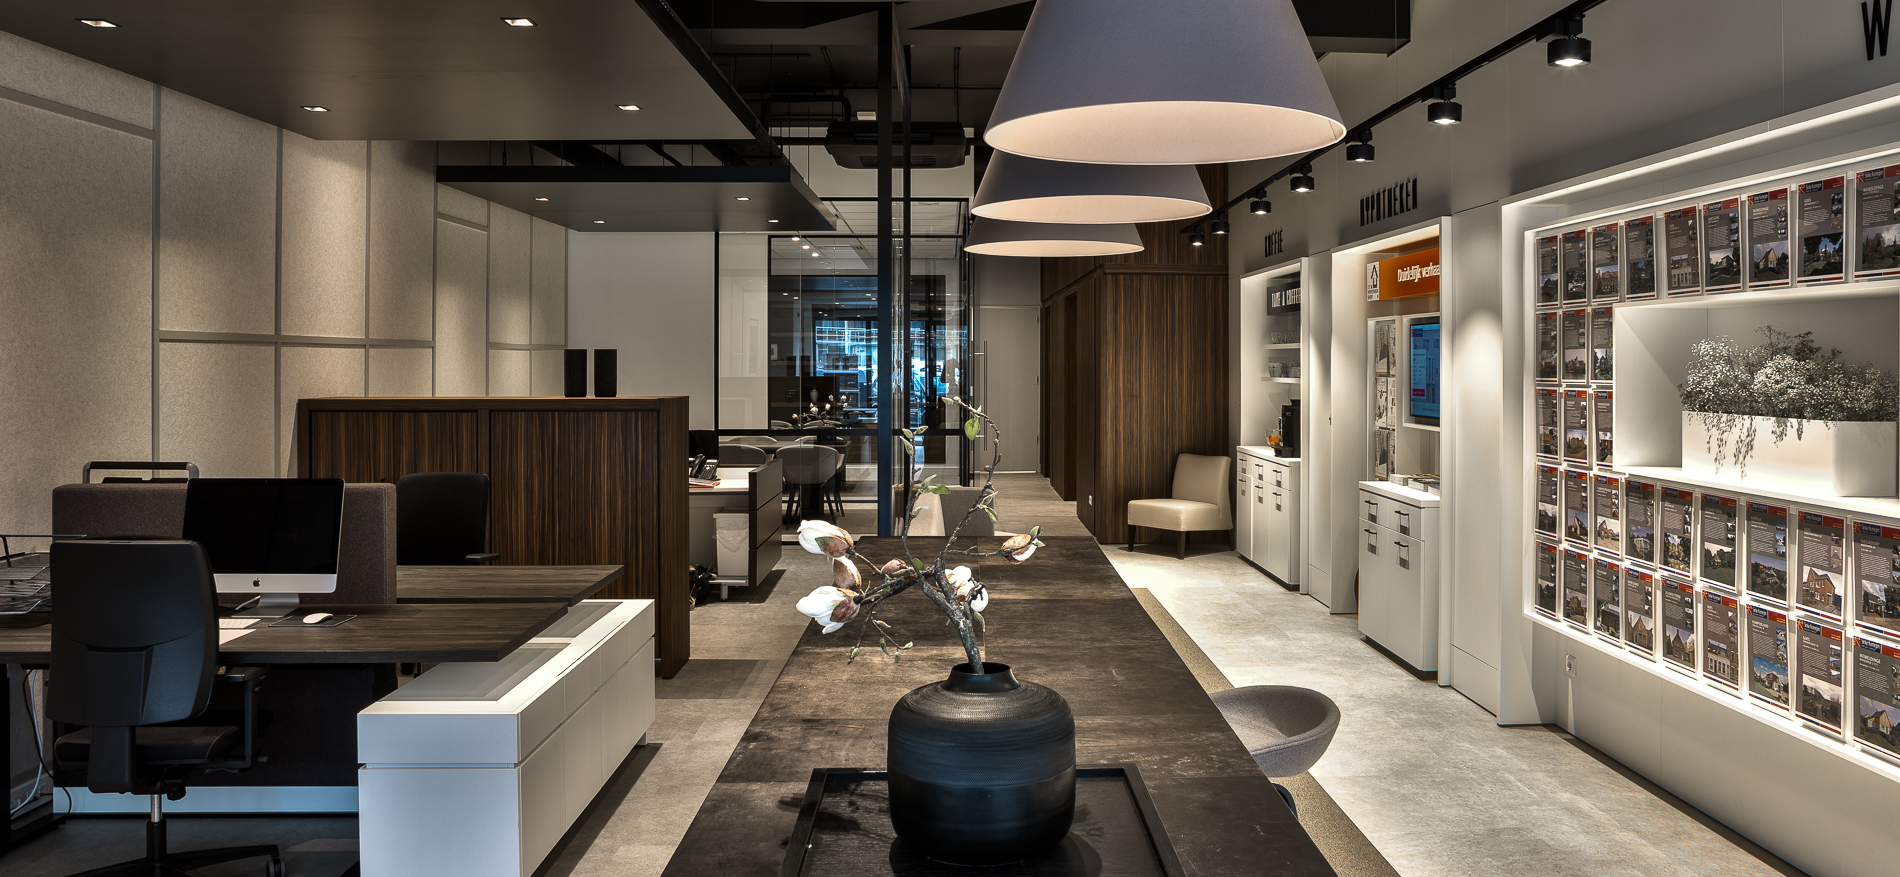 Inspiring Furniture For Your Office | Inspiring Design Of Work And Client  Spaces